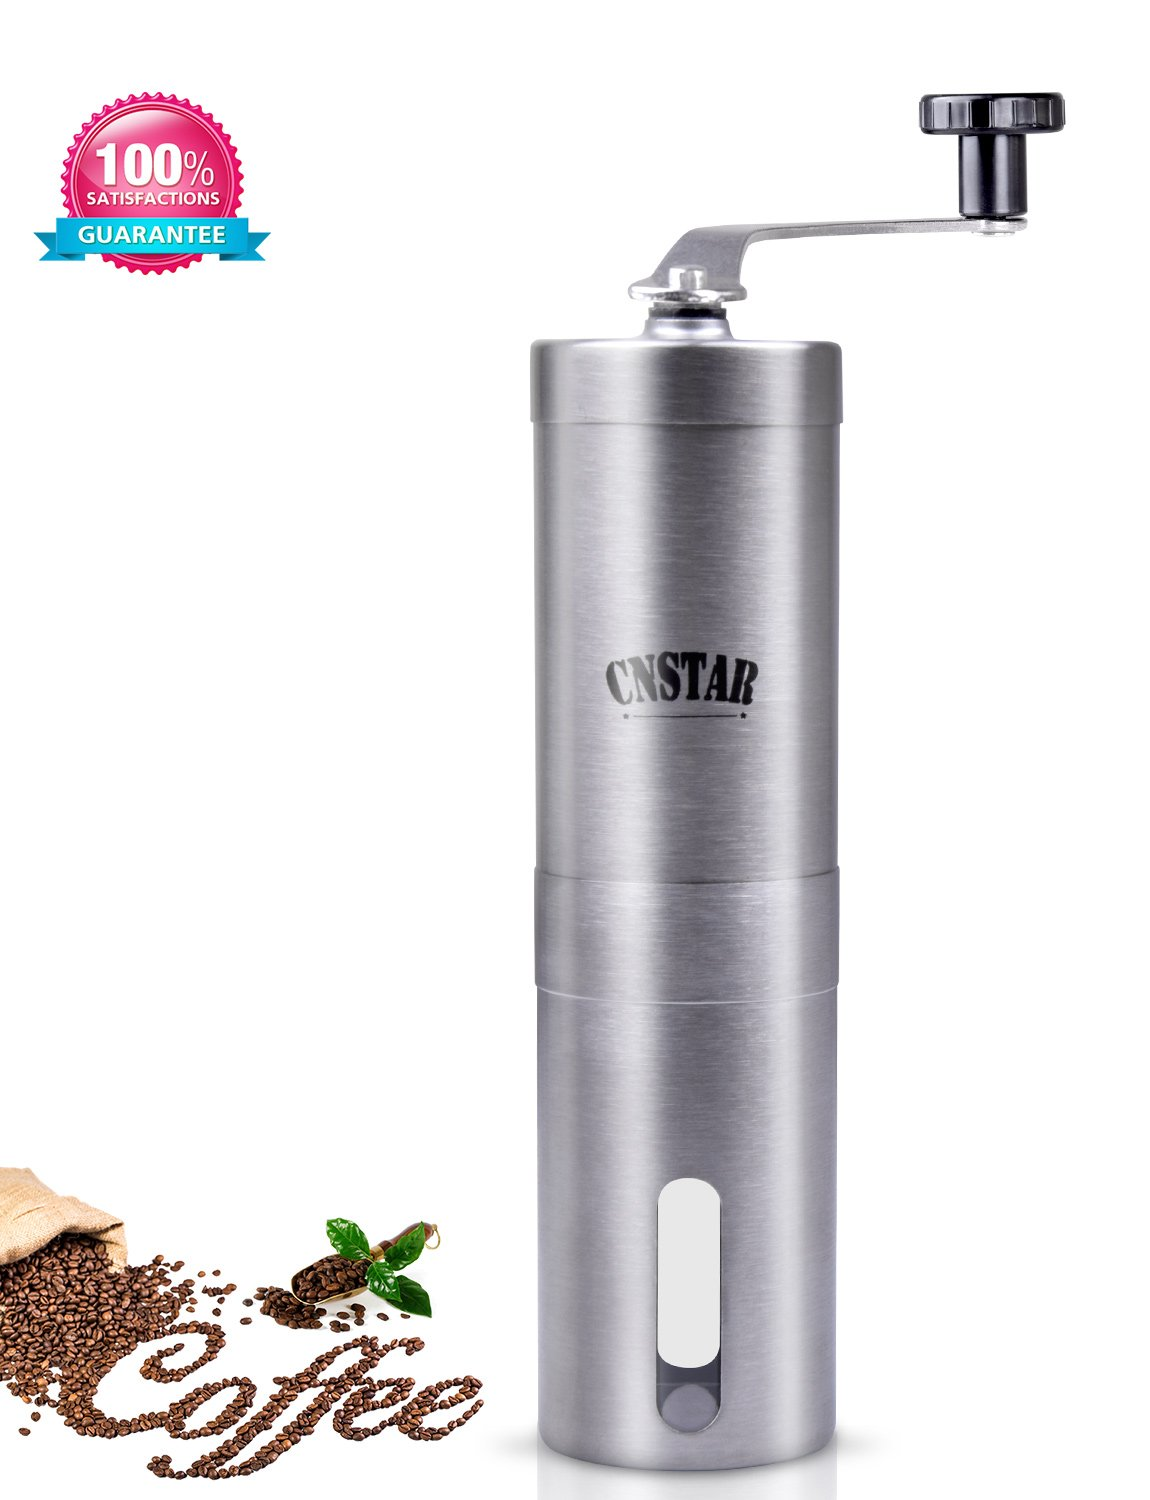 CNSTAR Hand Manual Coffee Bean Burr Grinder for Precision Brewing Manual Stainless Steel, Conical Burr Mill Hand Crank